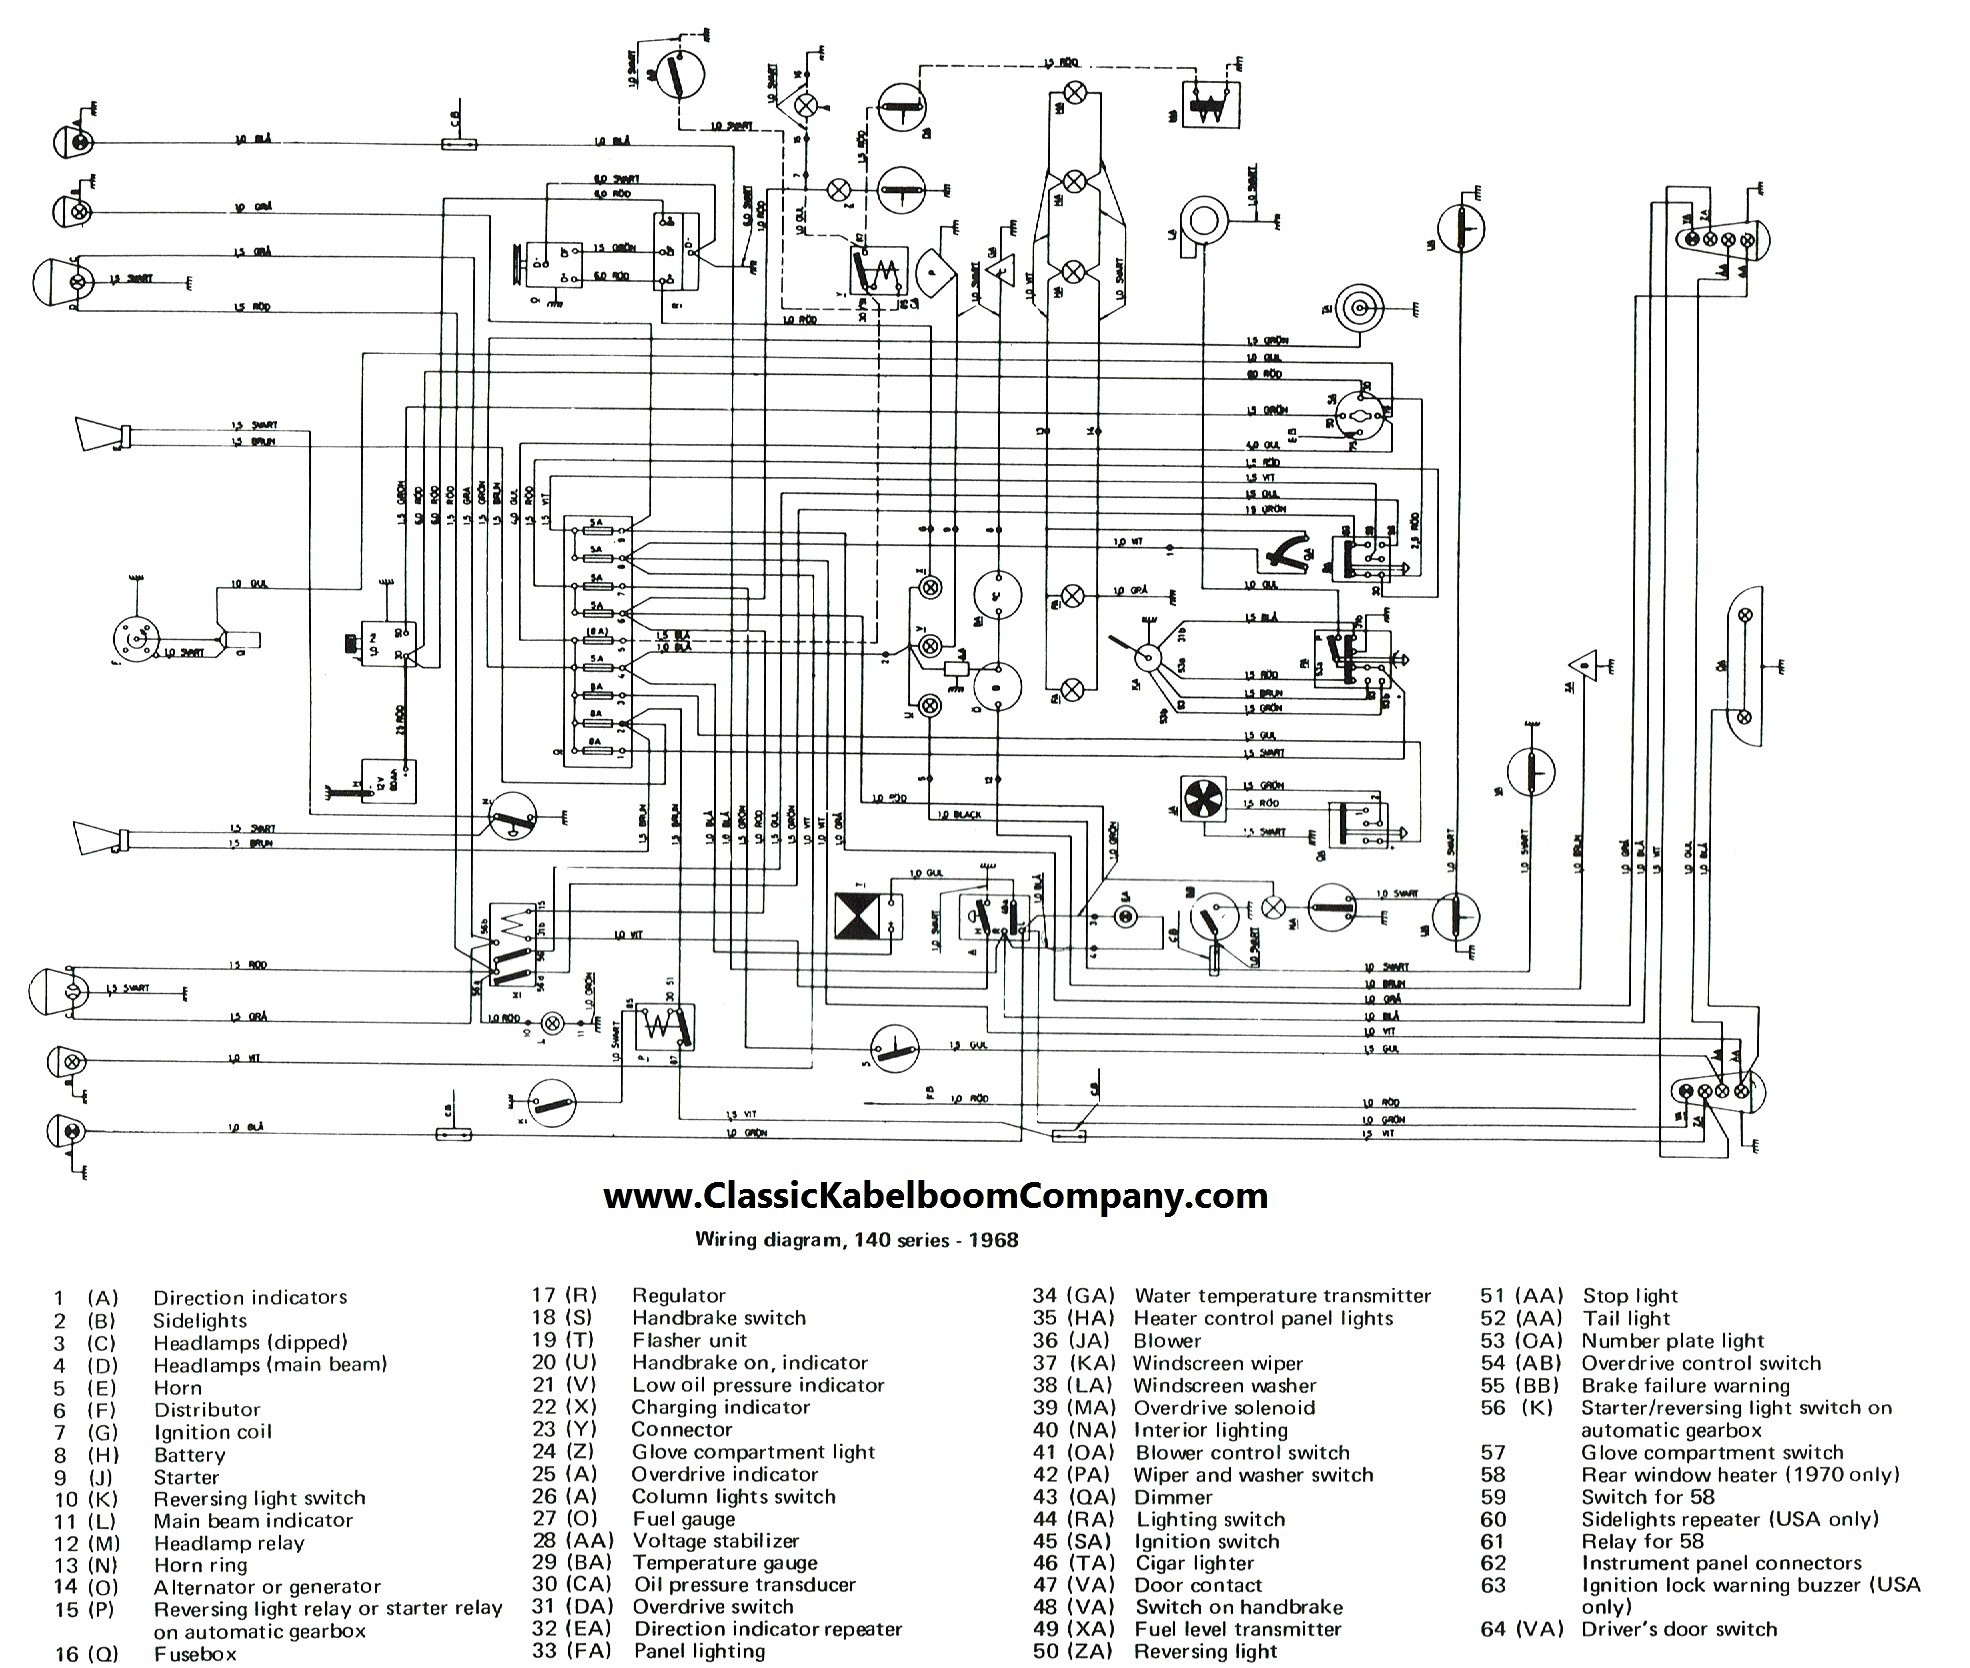 Mgb Fuse Diagram on 1976 tr6 wiring diagram